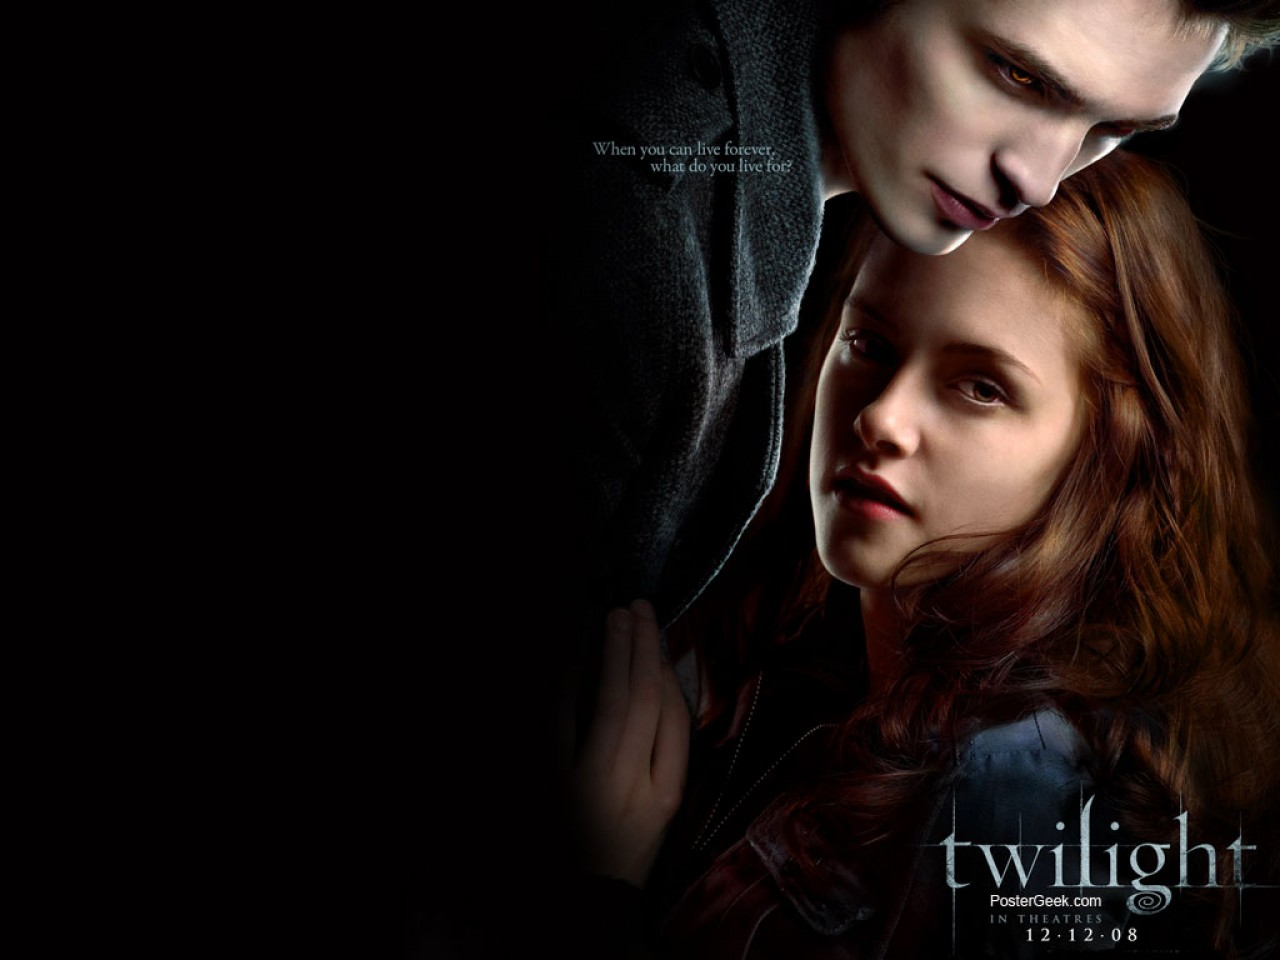 Window 7 Hd Wallpaper Twilight Hollywood Movie Hd Wallpaper